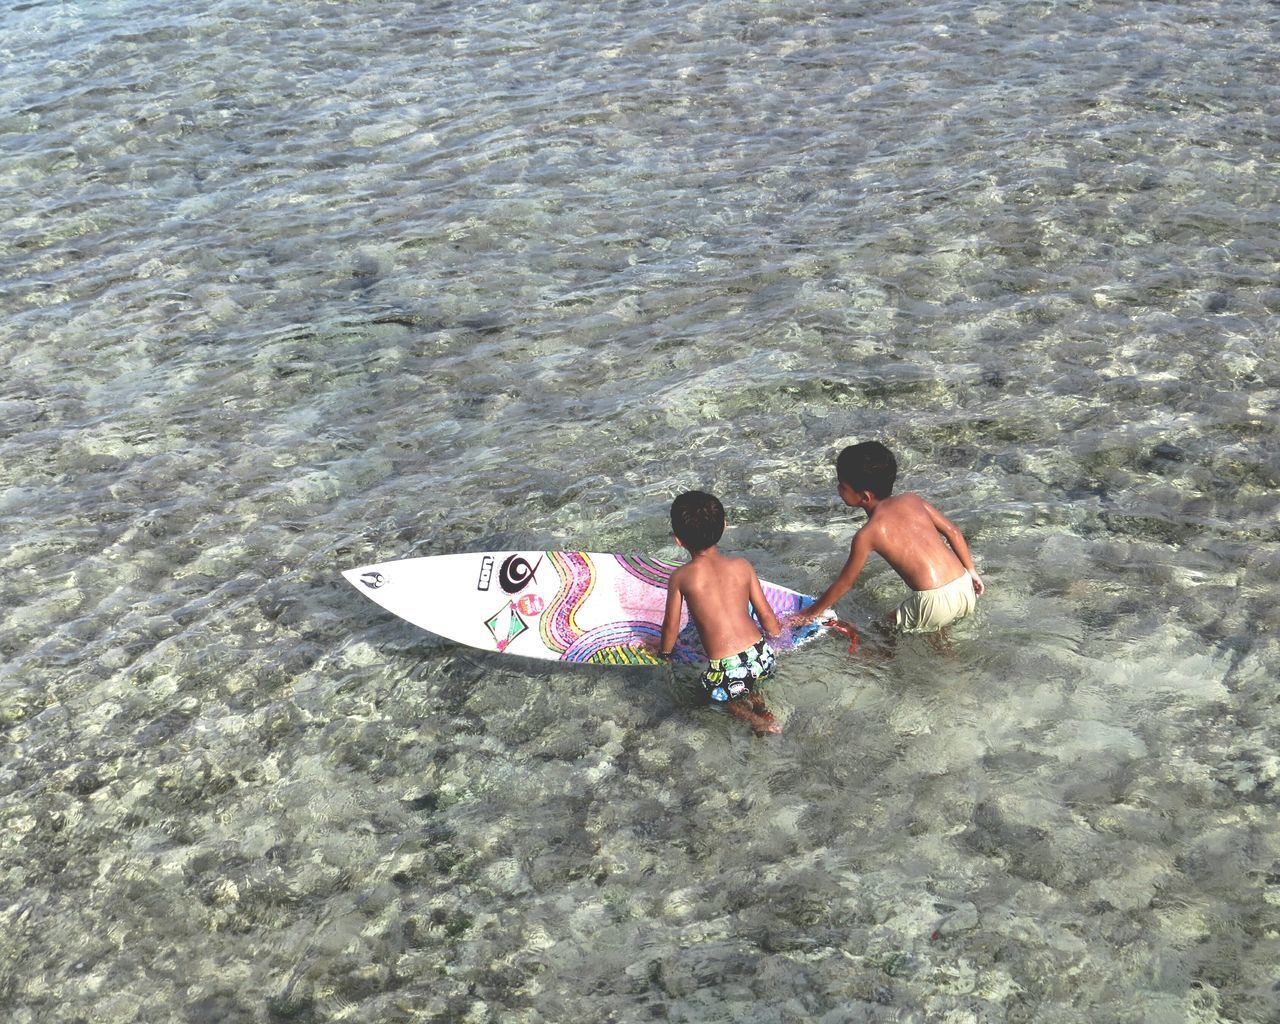 Surf's Up Child Surfers Surfing Life Surfers Children Sea Boys Top View Looking Down Watersports Tropical Climate Water Recreation Siargao Island Shallow Water